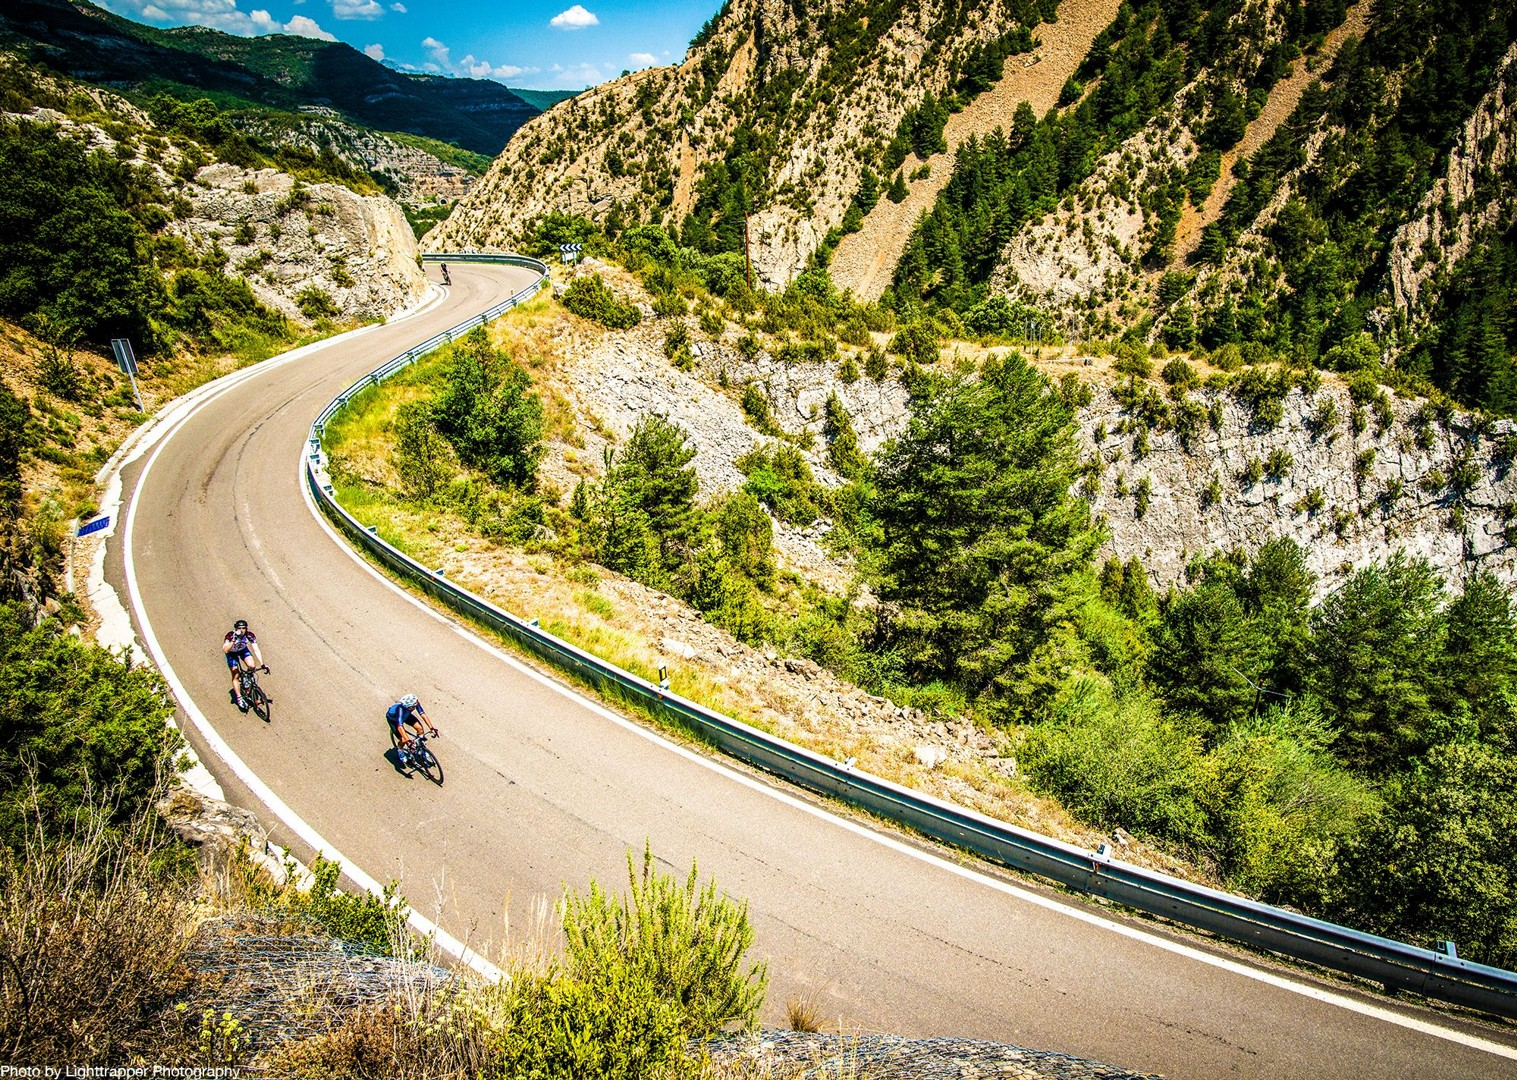 cycling-spanish-pyrenees-coast-to-coast-road-holiday.jpg - NEW! Spain - Spanish Pyrenees Coast to Coast - Road Cycling